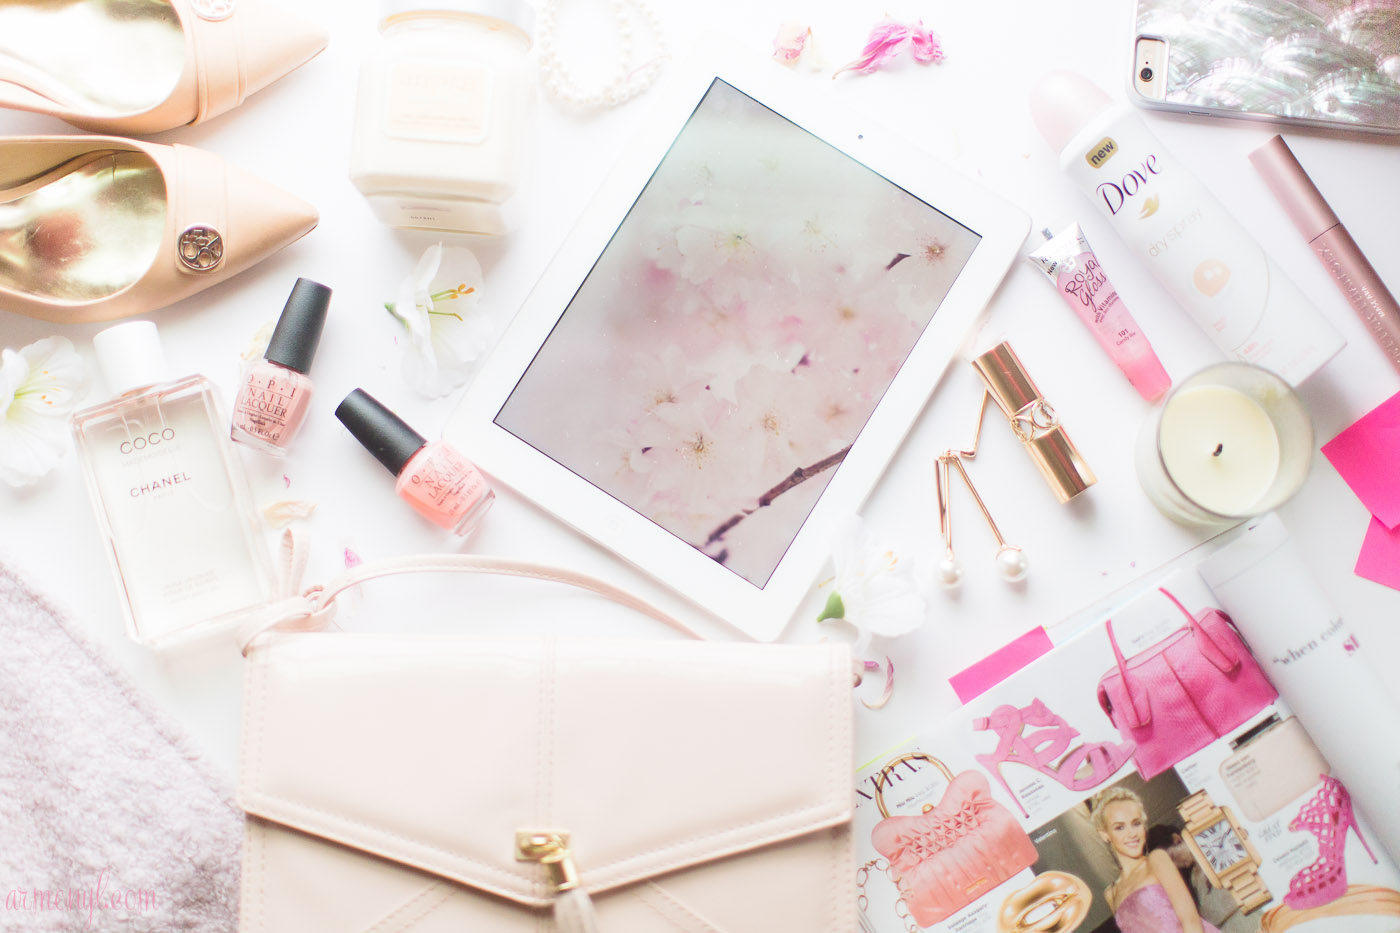 Armenyl's 2015 gift guide, iPhone cases, Pink Flat lay, chanel, color, peach